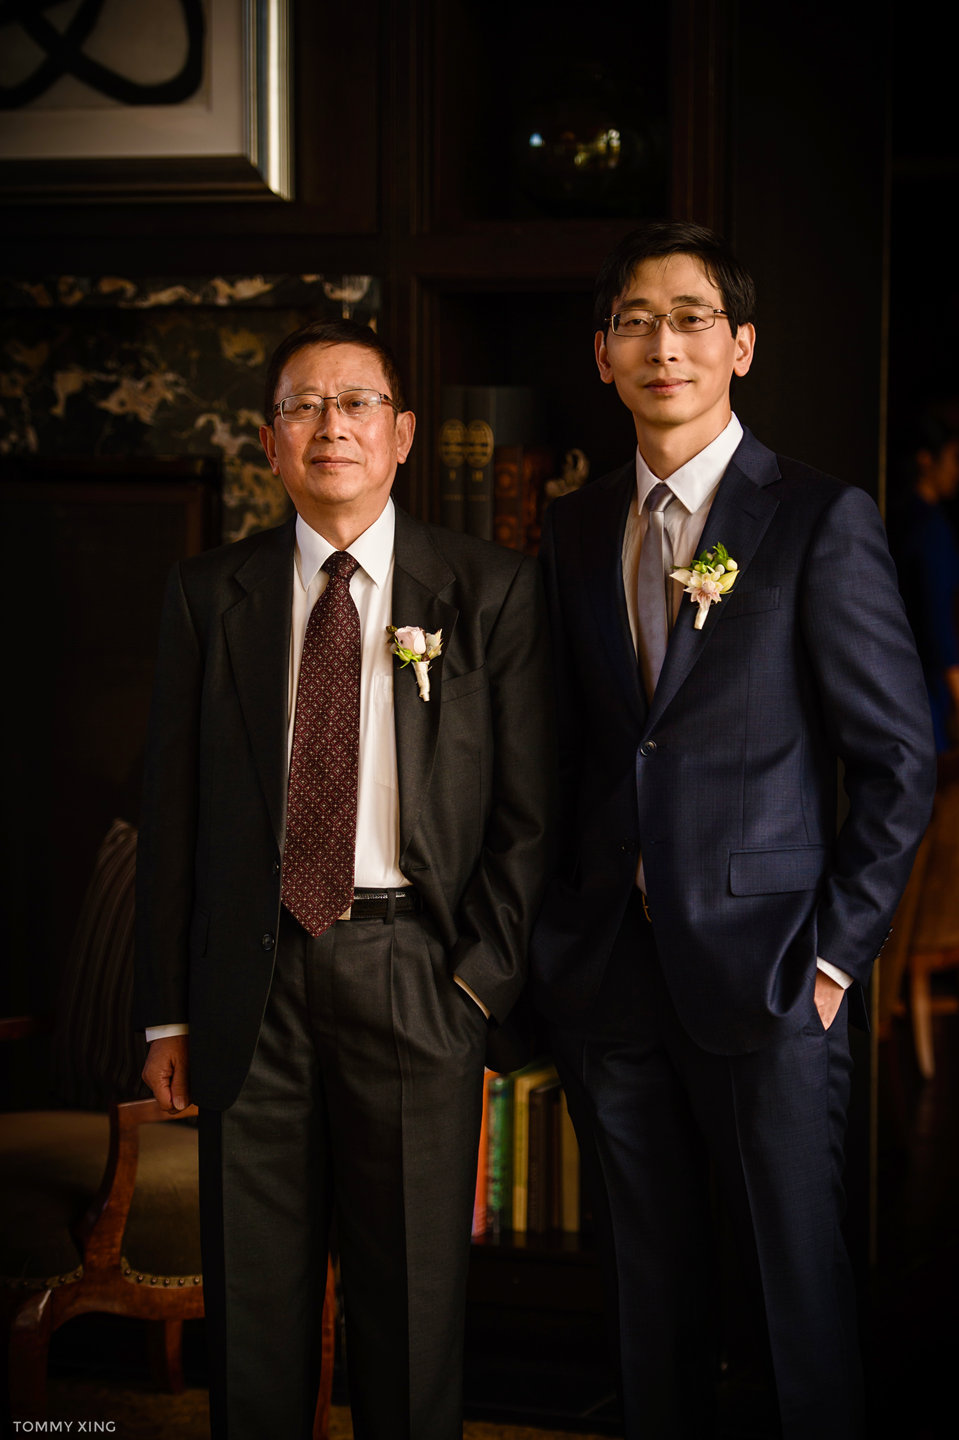 San Francisco Wedding Photography Valley Presbyterian Church WEDDING Tommy Xing Photography 洛杉矶旧金山婚礼婚纱照摄影师018.jpg